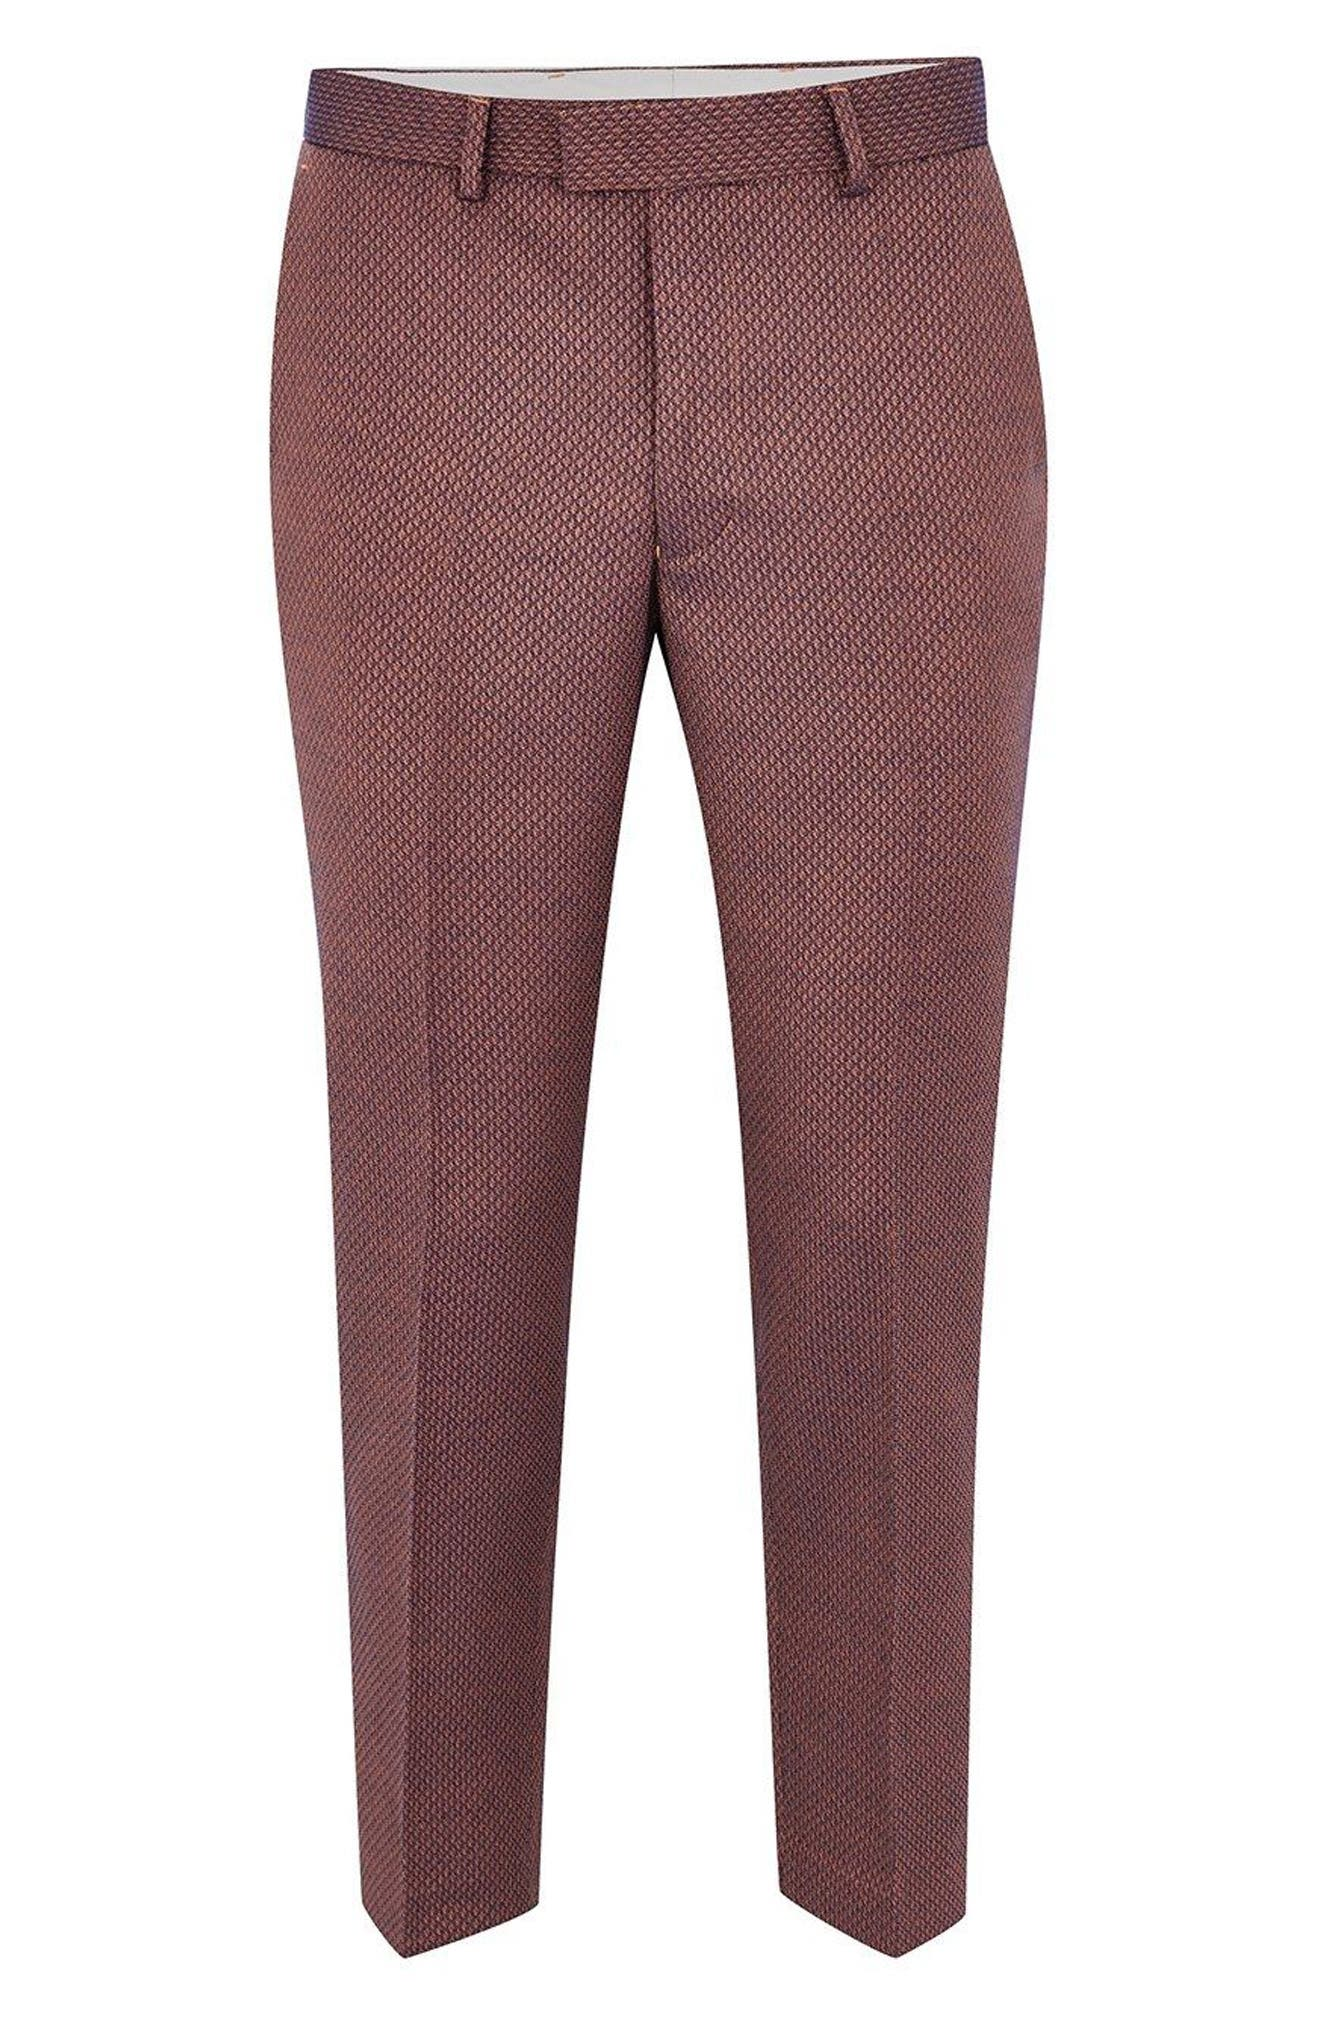 Skinny Fit Jacquard Trousers,                             Alternate thumbnail 3, color,                             RED